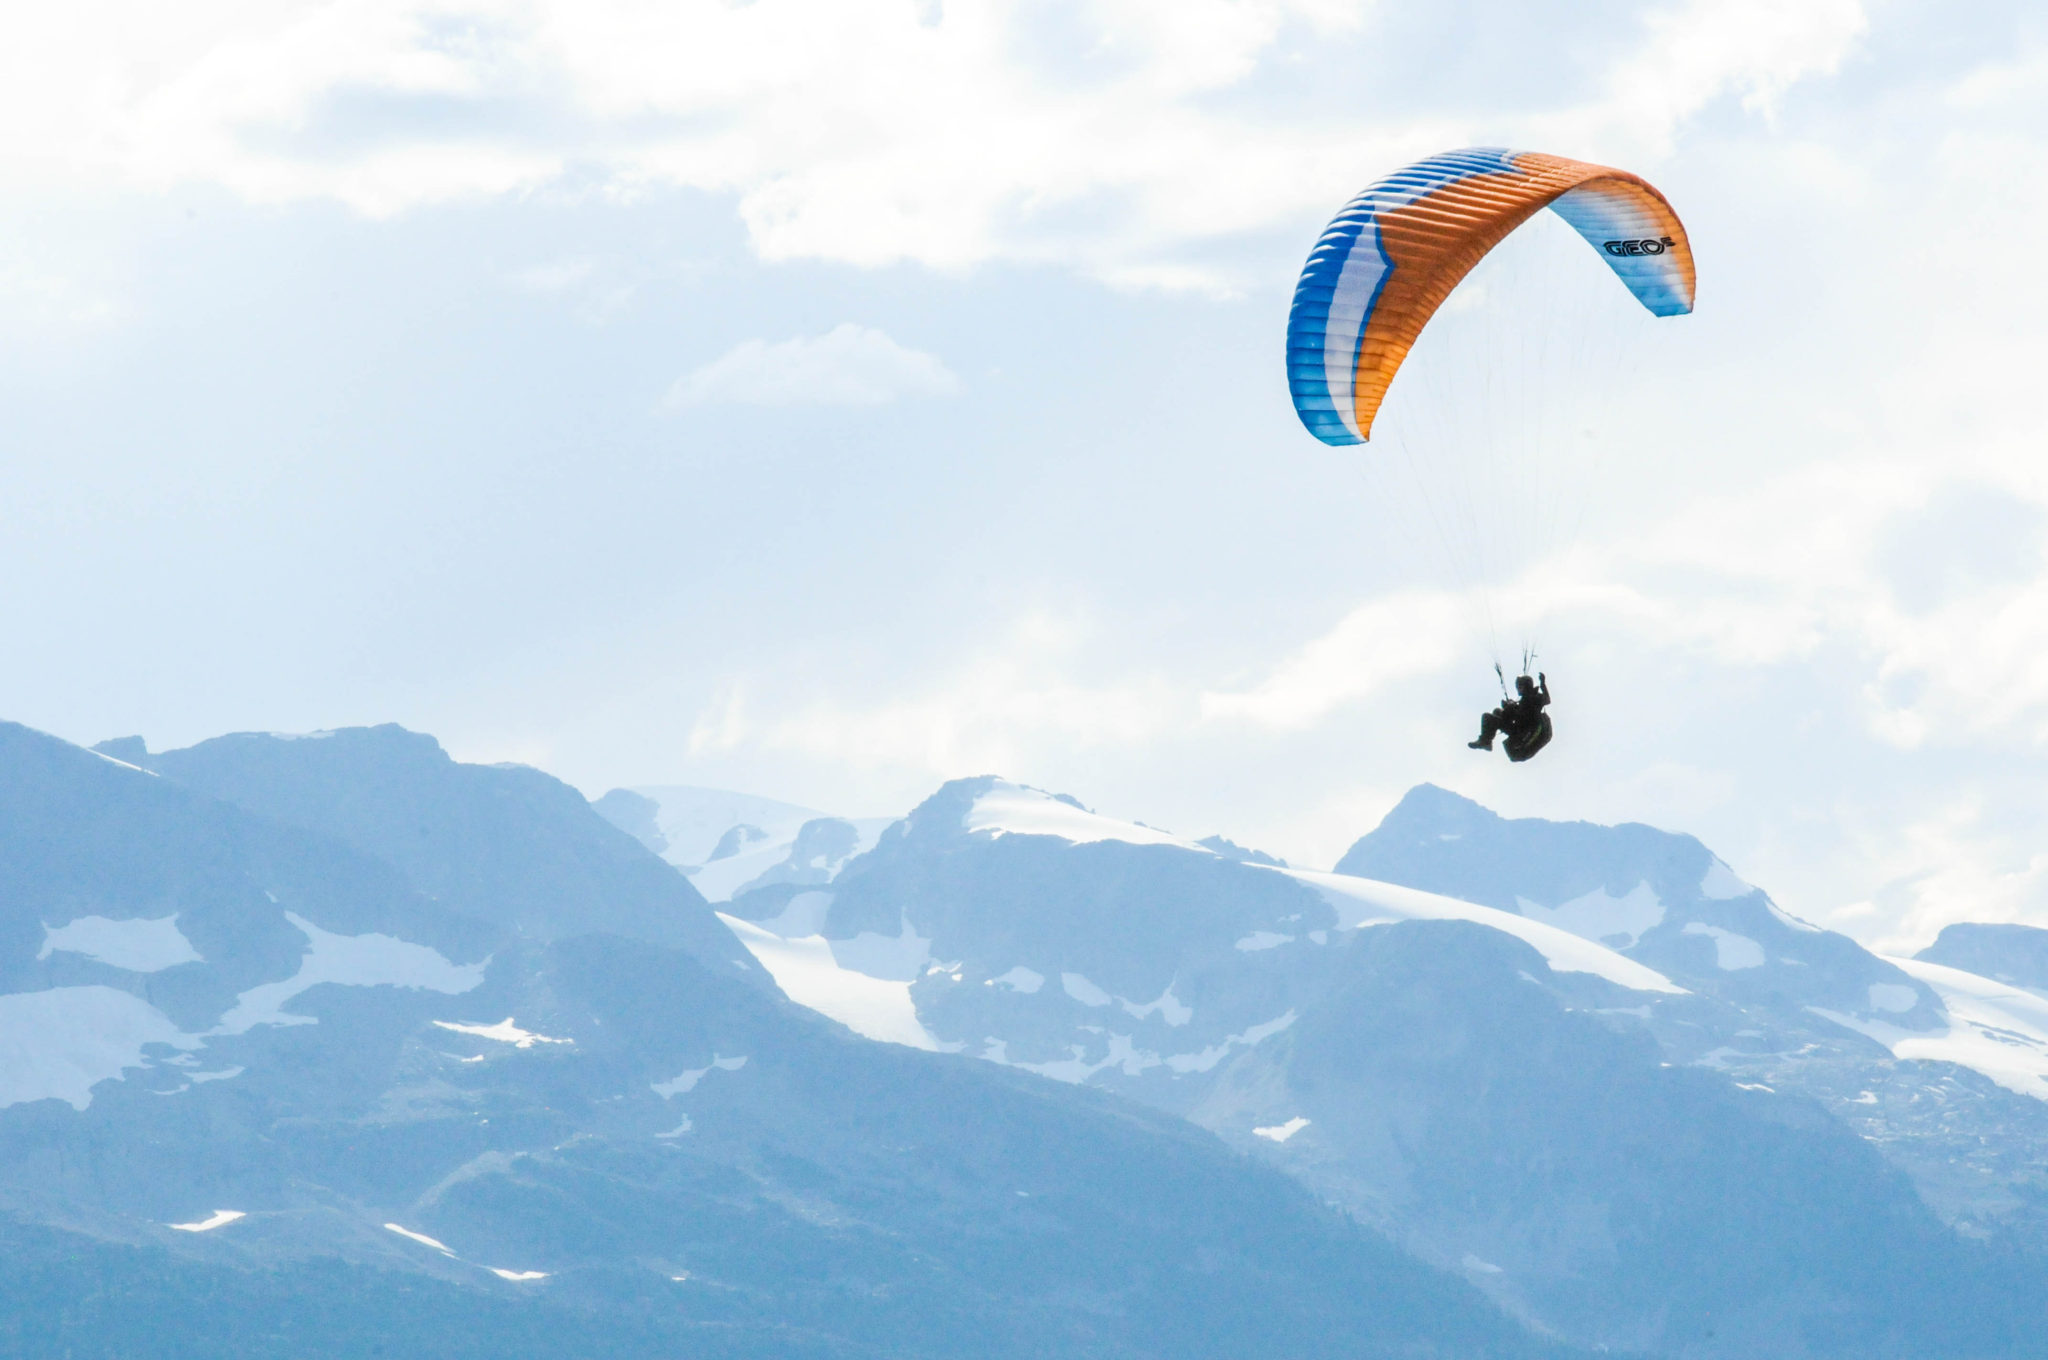 Canadian Paragliding Nationals – Sea to Sky Paragliding